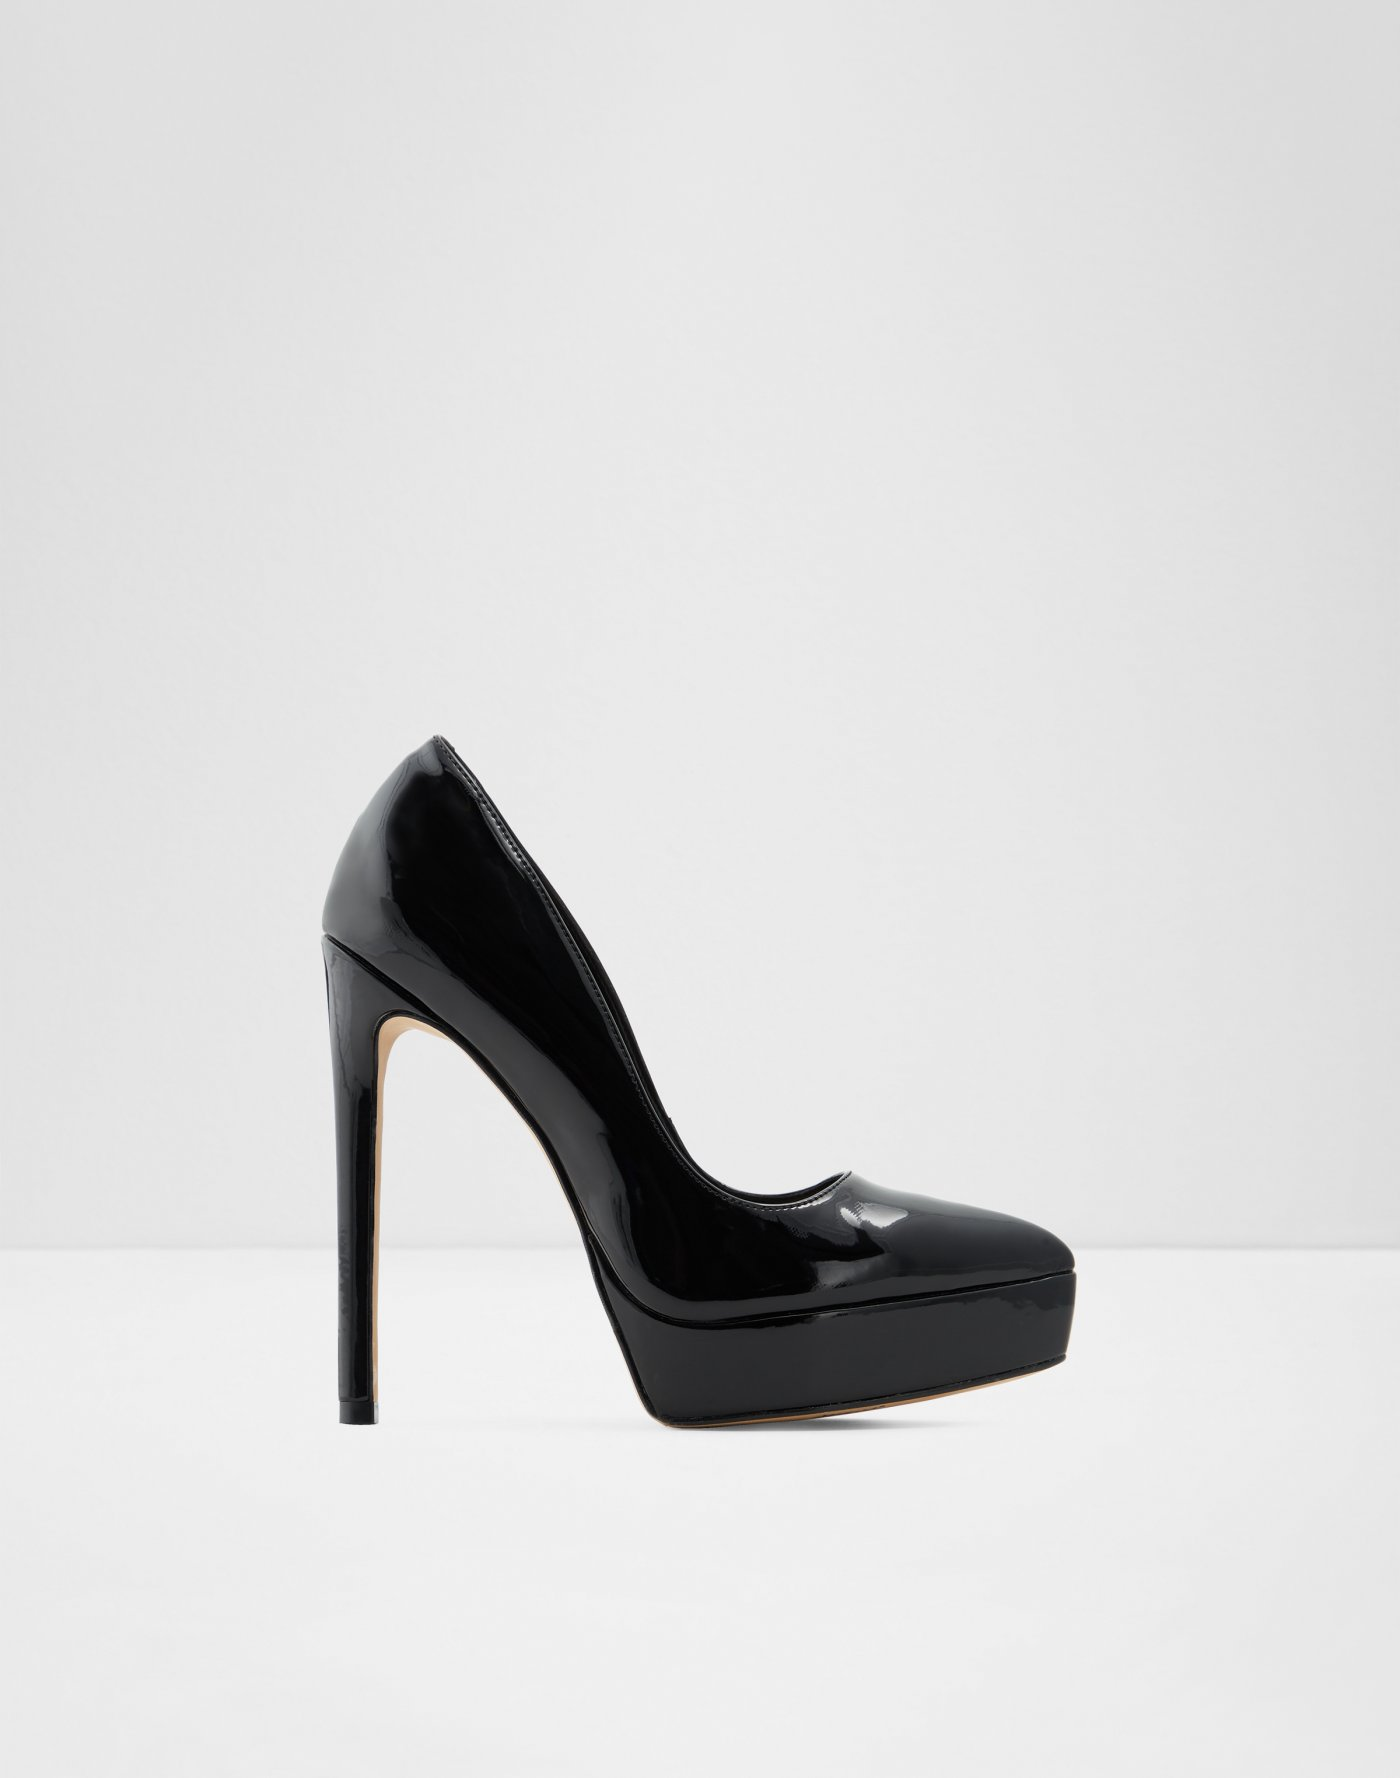 8676b0a091c Women's Heels | Black, Red, Nude, Silver Heels | ALDO US | Aldoshoes ...